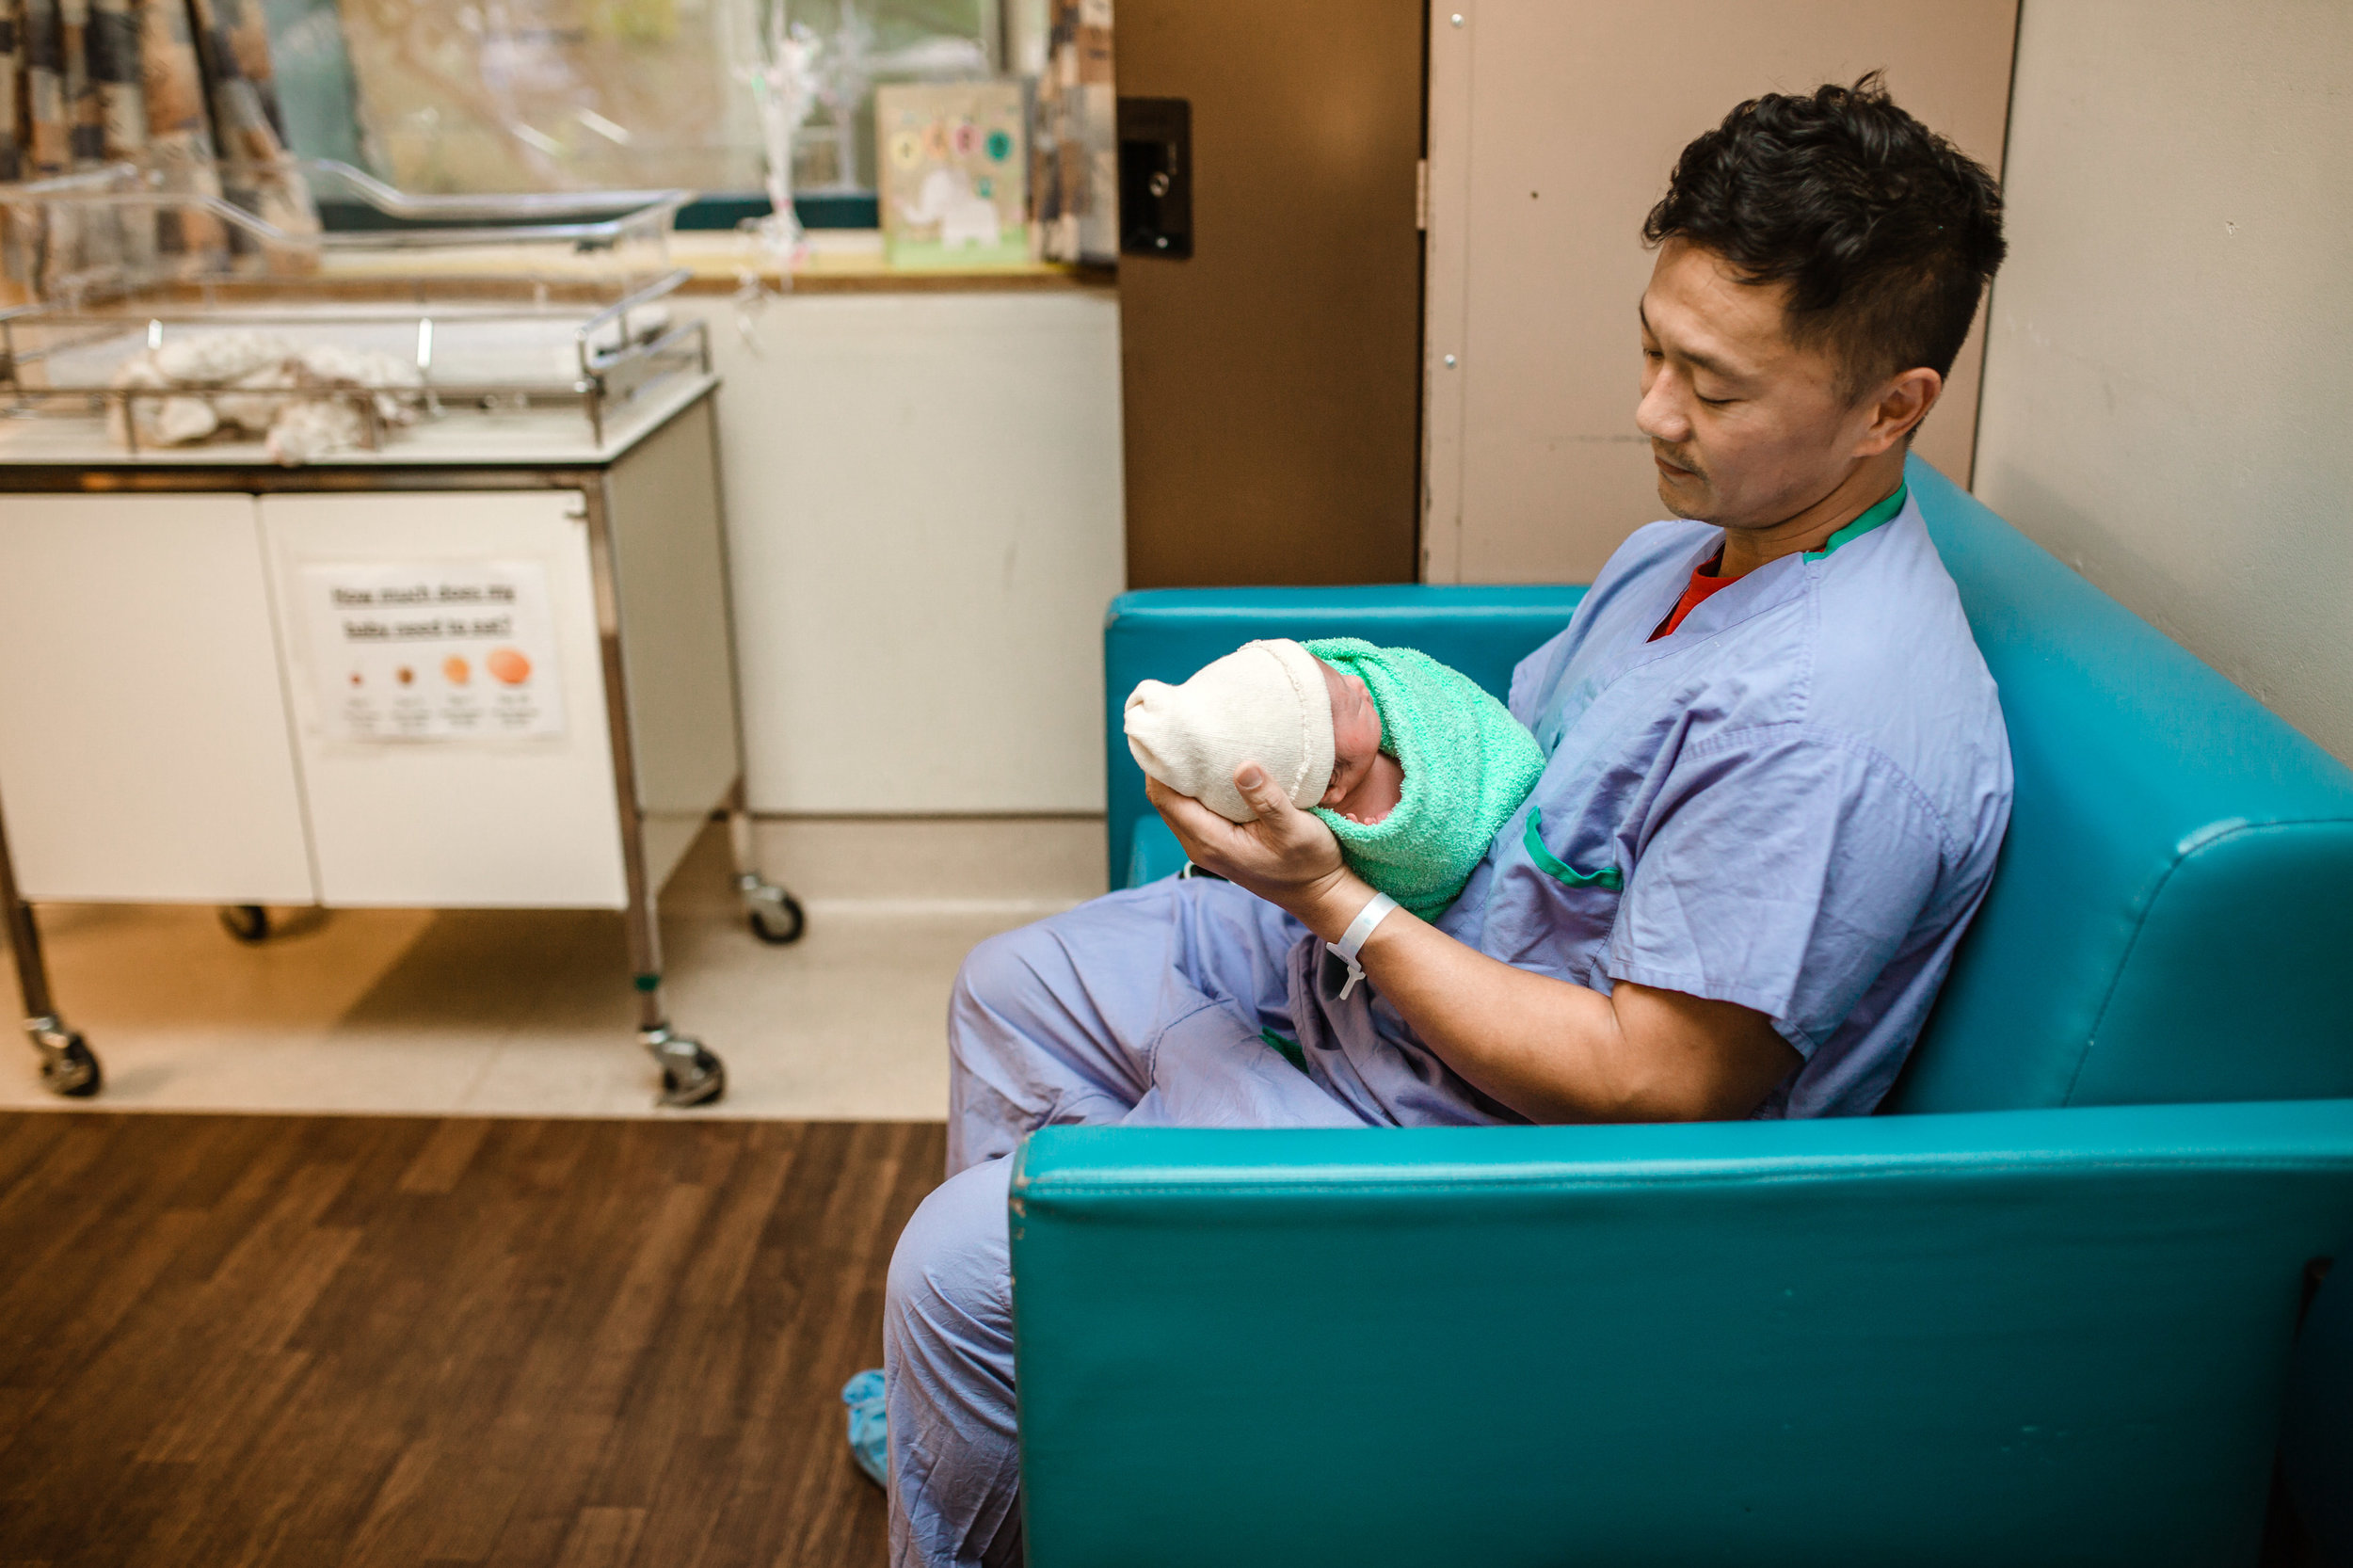 dad-holding-baby-hospital-vancouver